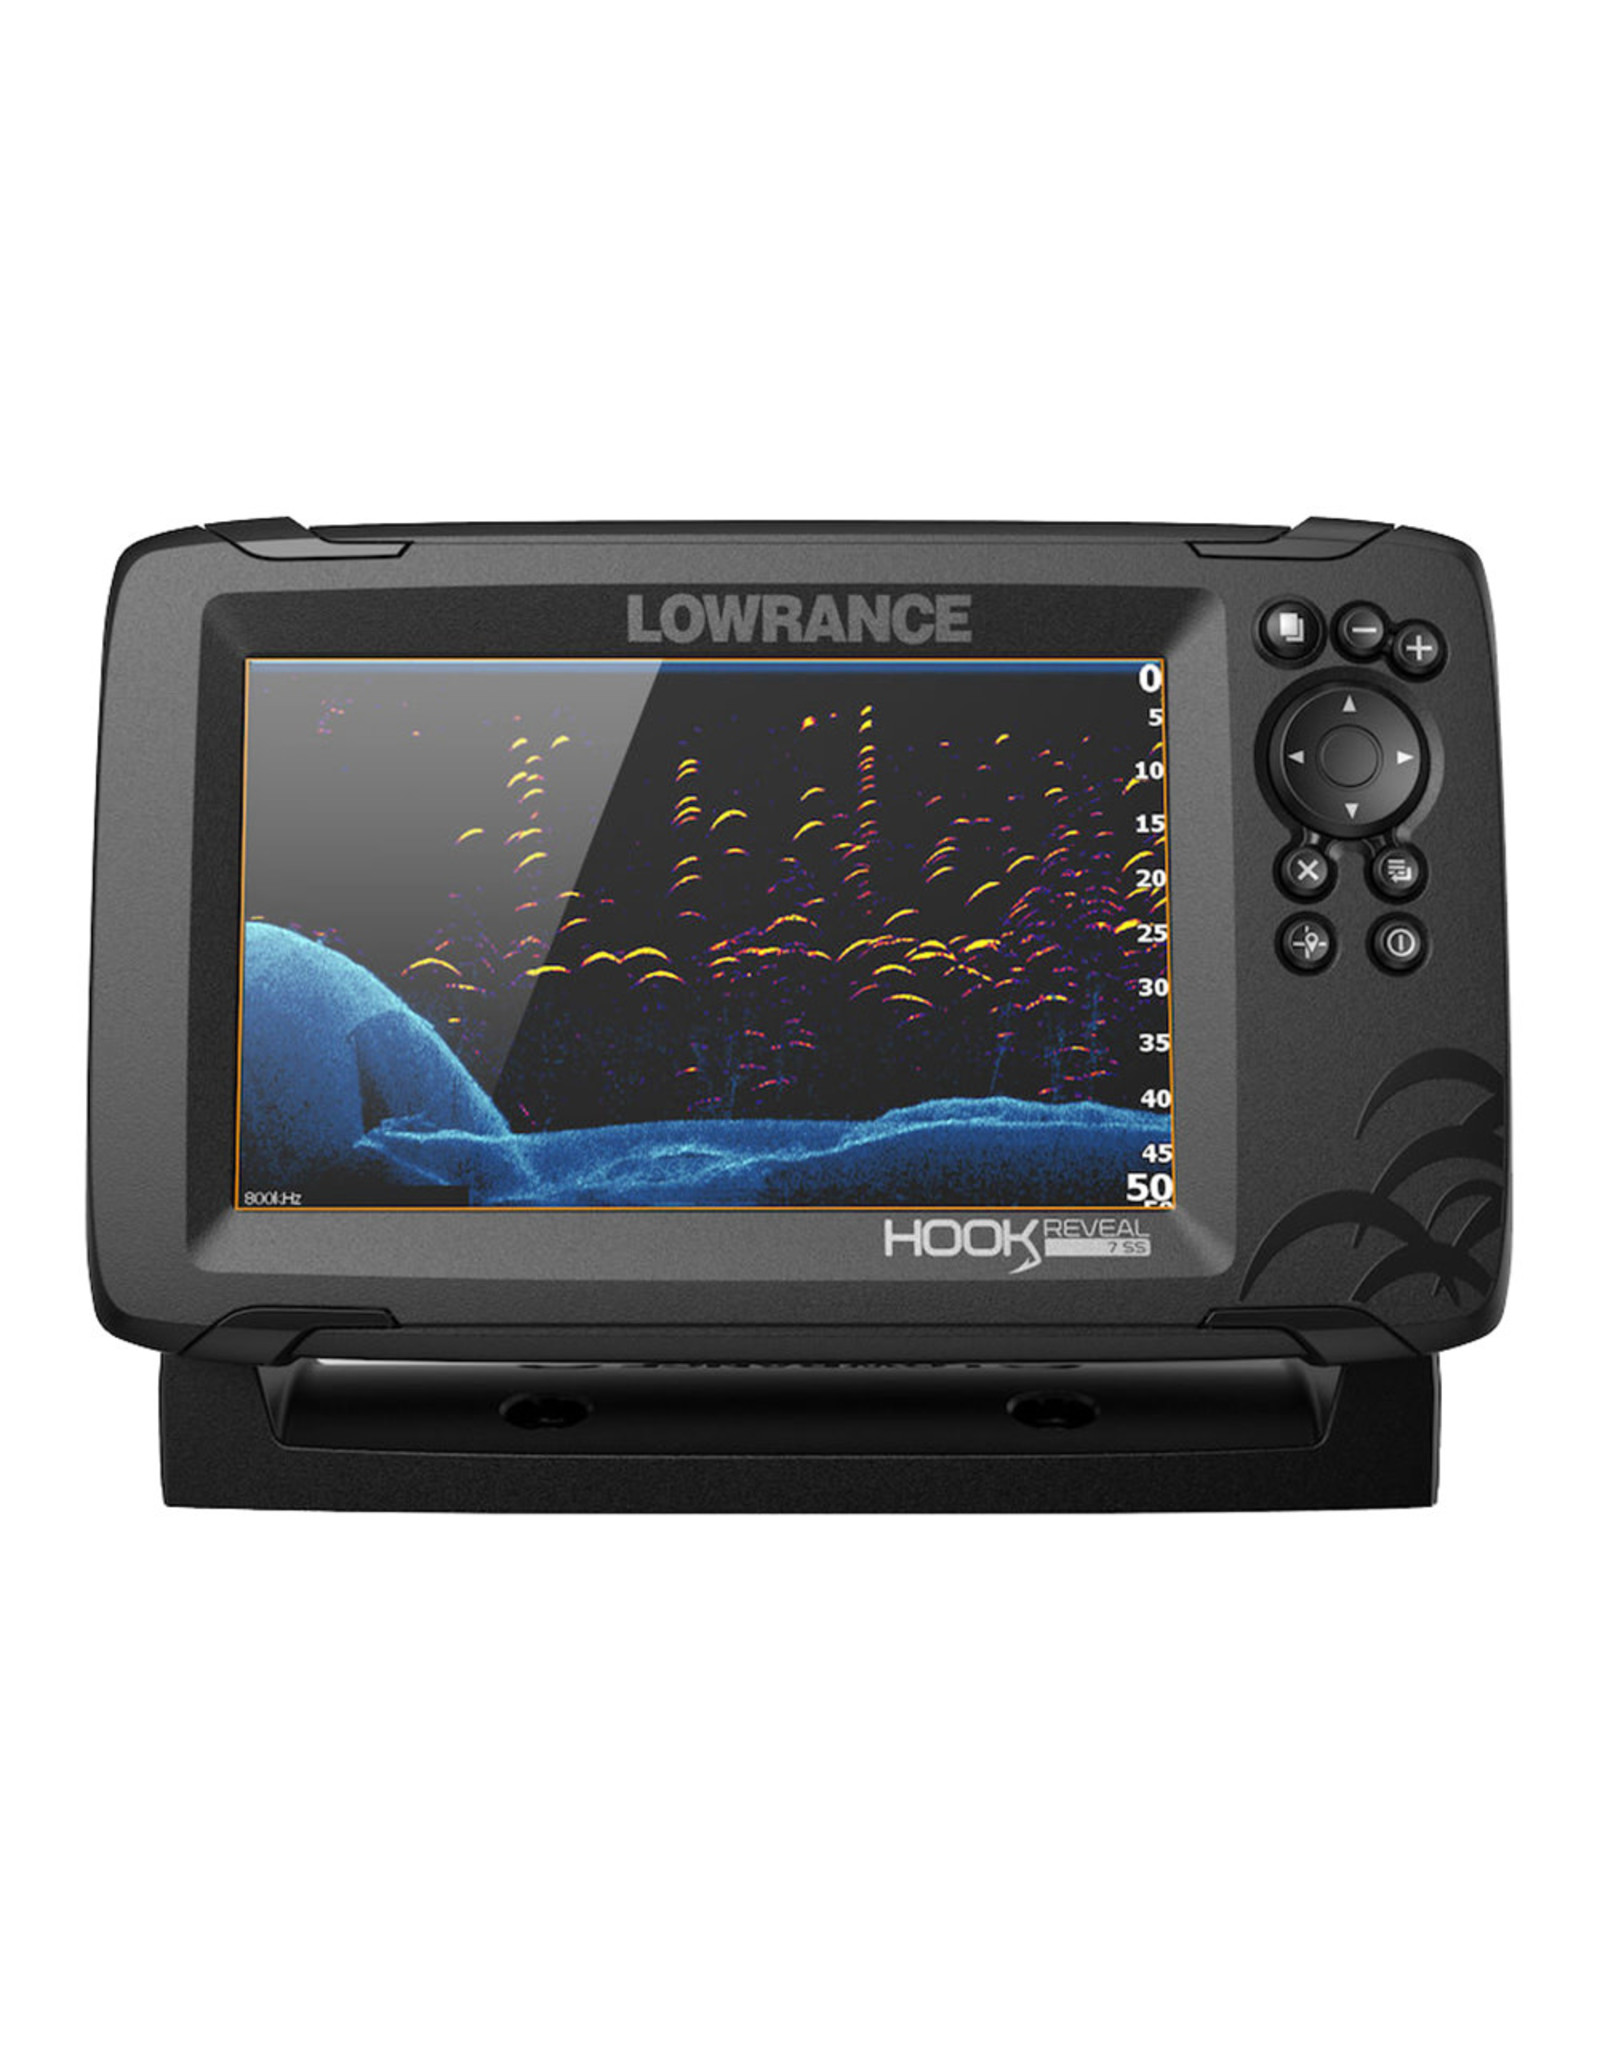 Lowrance HOOK Reveal 7 Chartplotter/Fishfinder with SplitShot Transducer & US Inland Charts